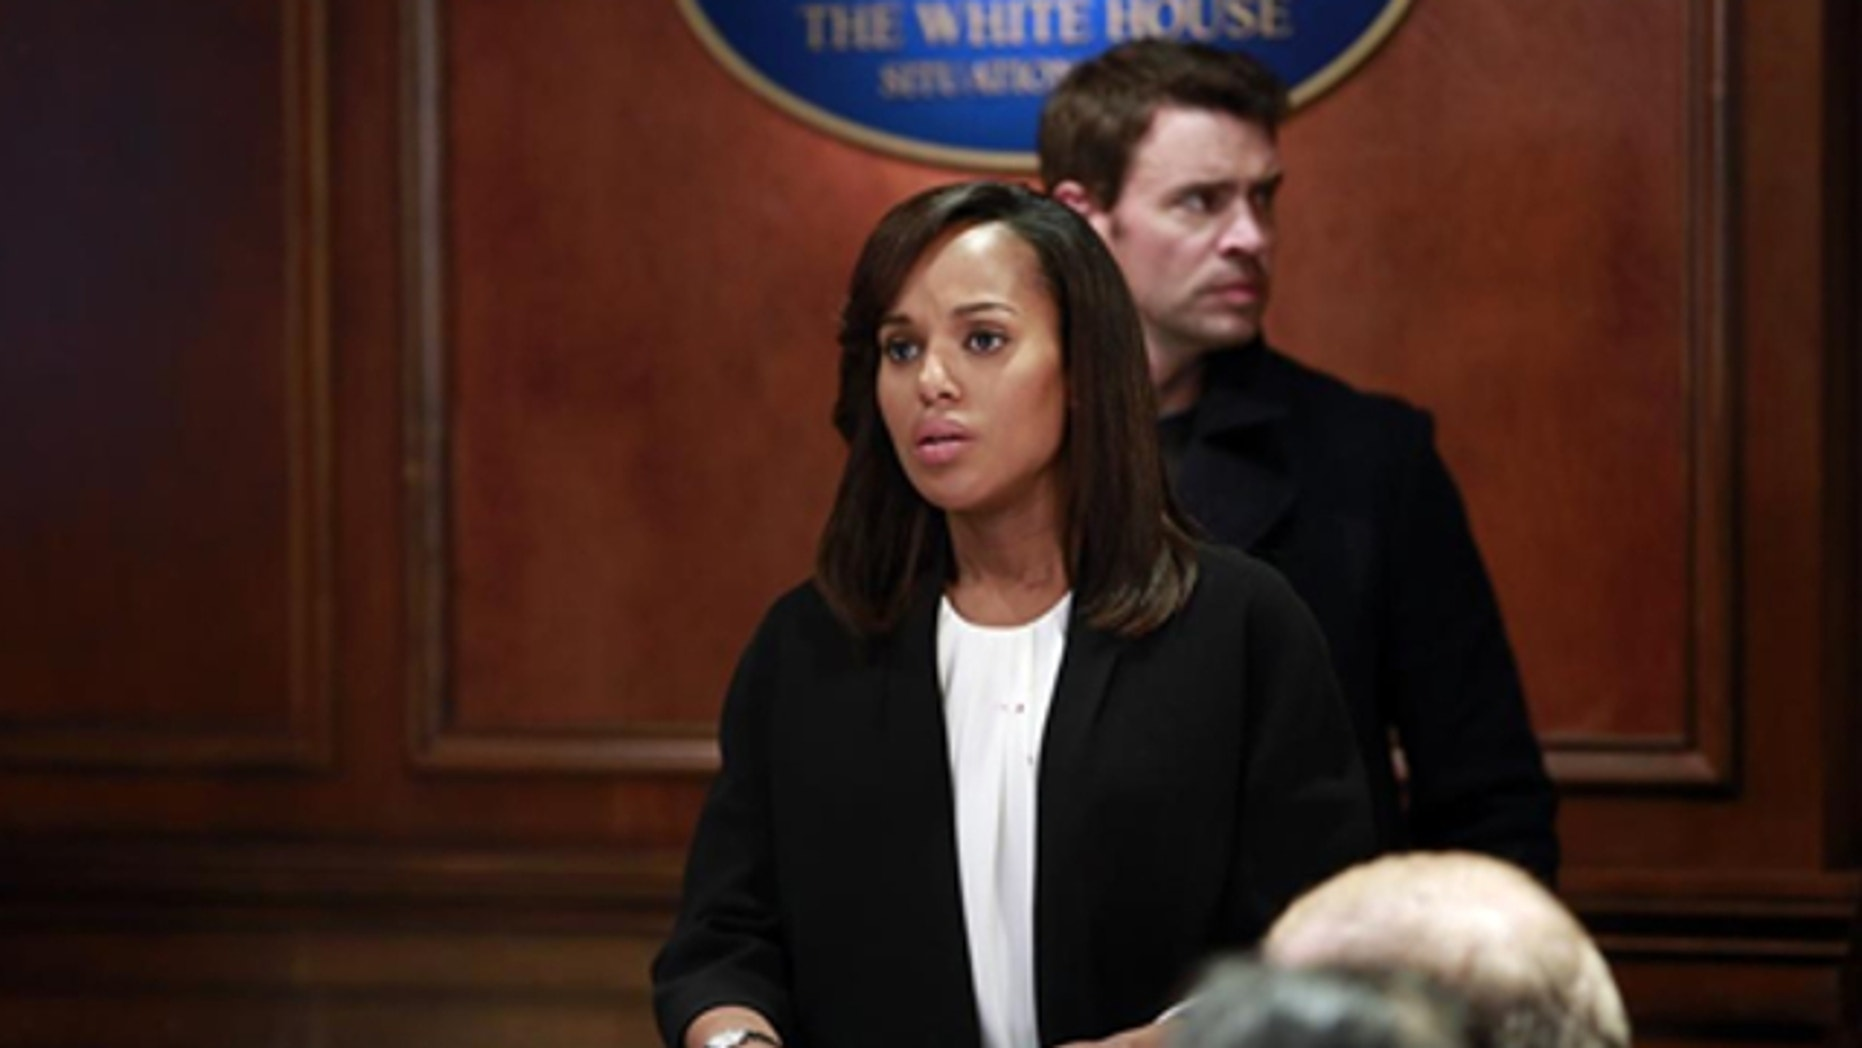 """This image released by ABC shows actress Kerry Washington in a scene from """"Scandal."""" The series airs Thursdays at 10 p.m. EST on ABC."""